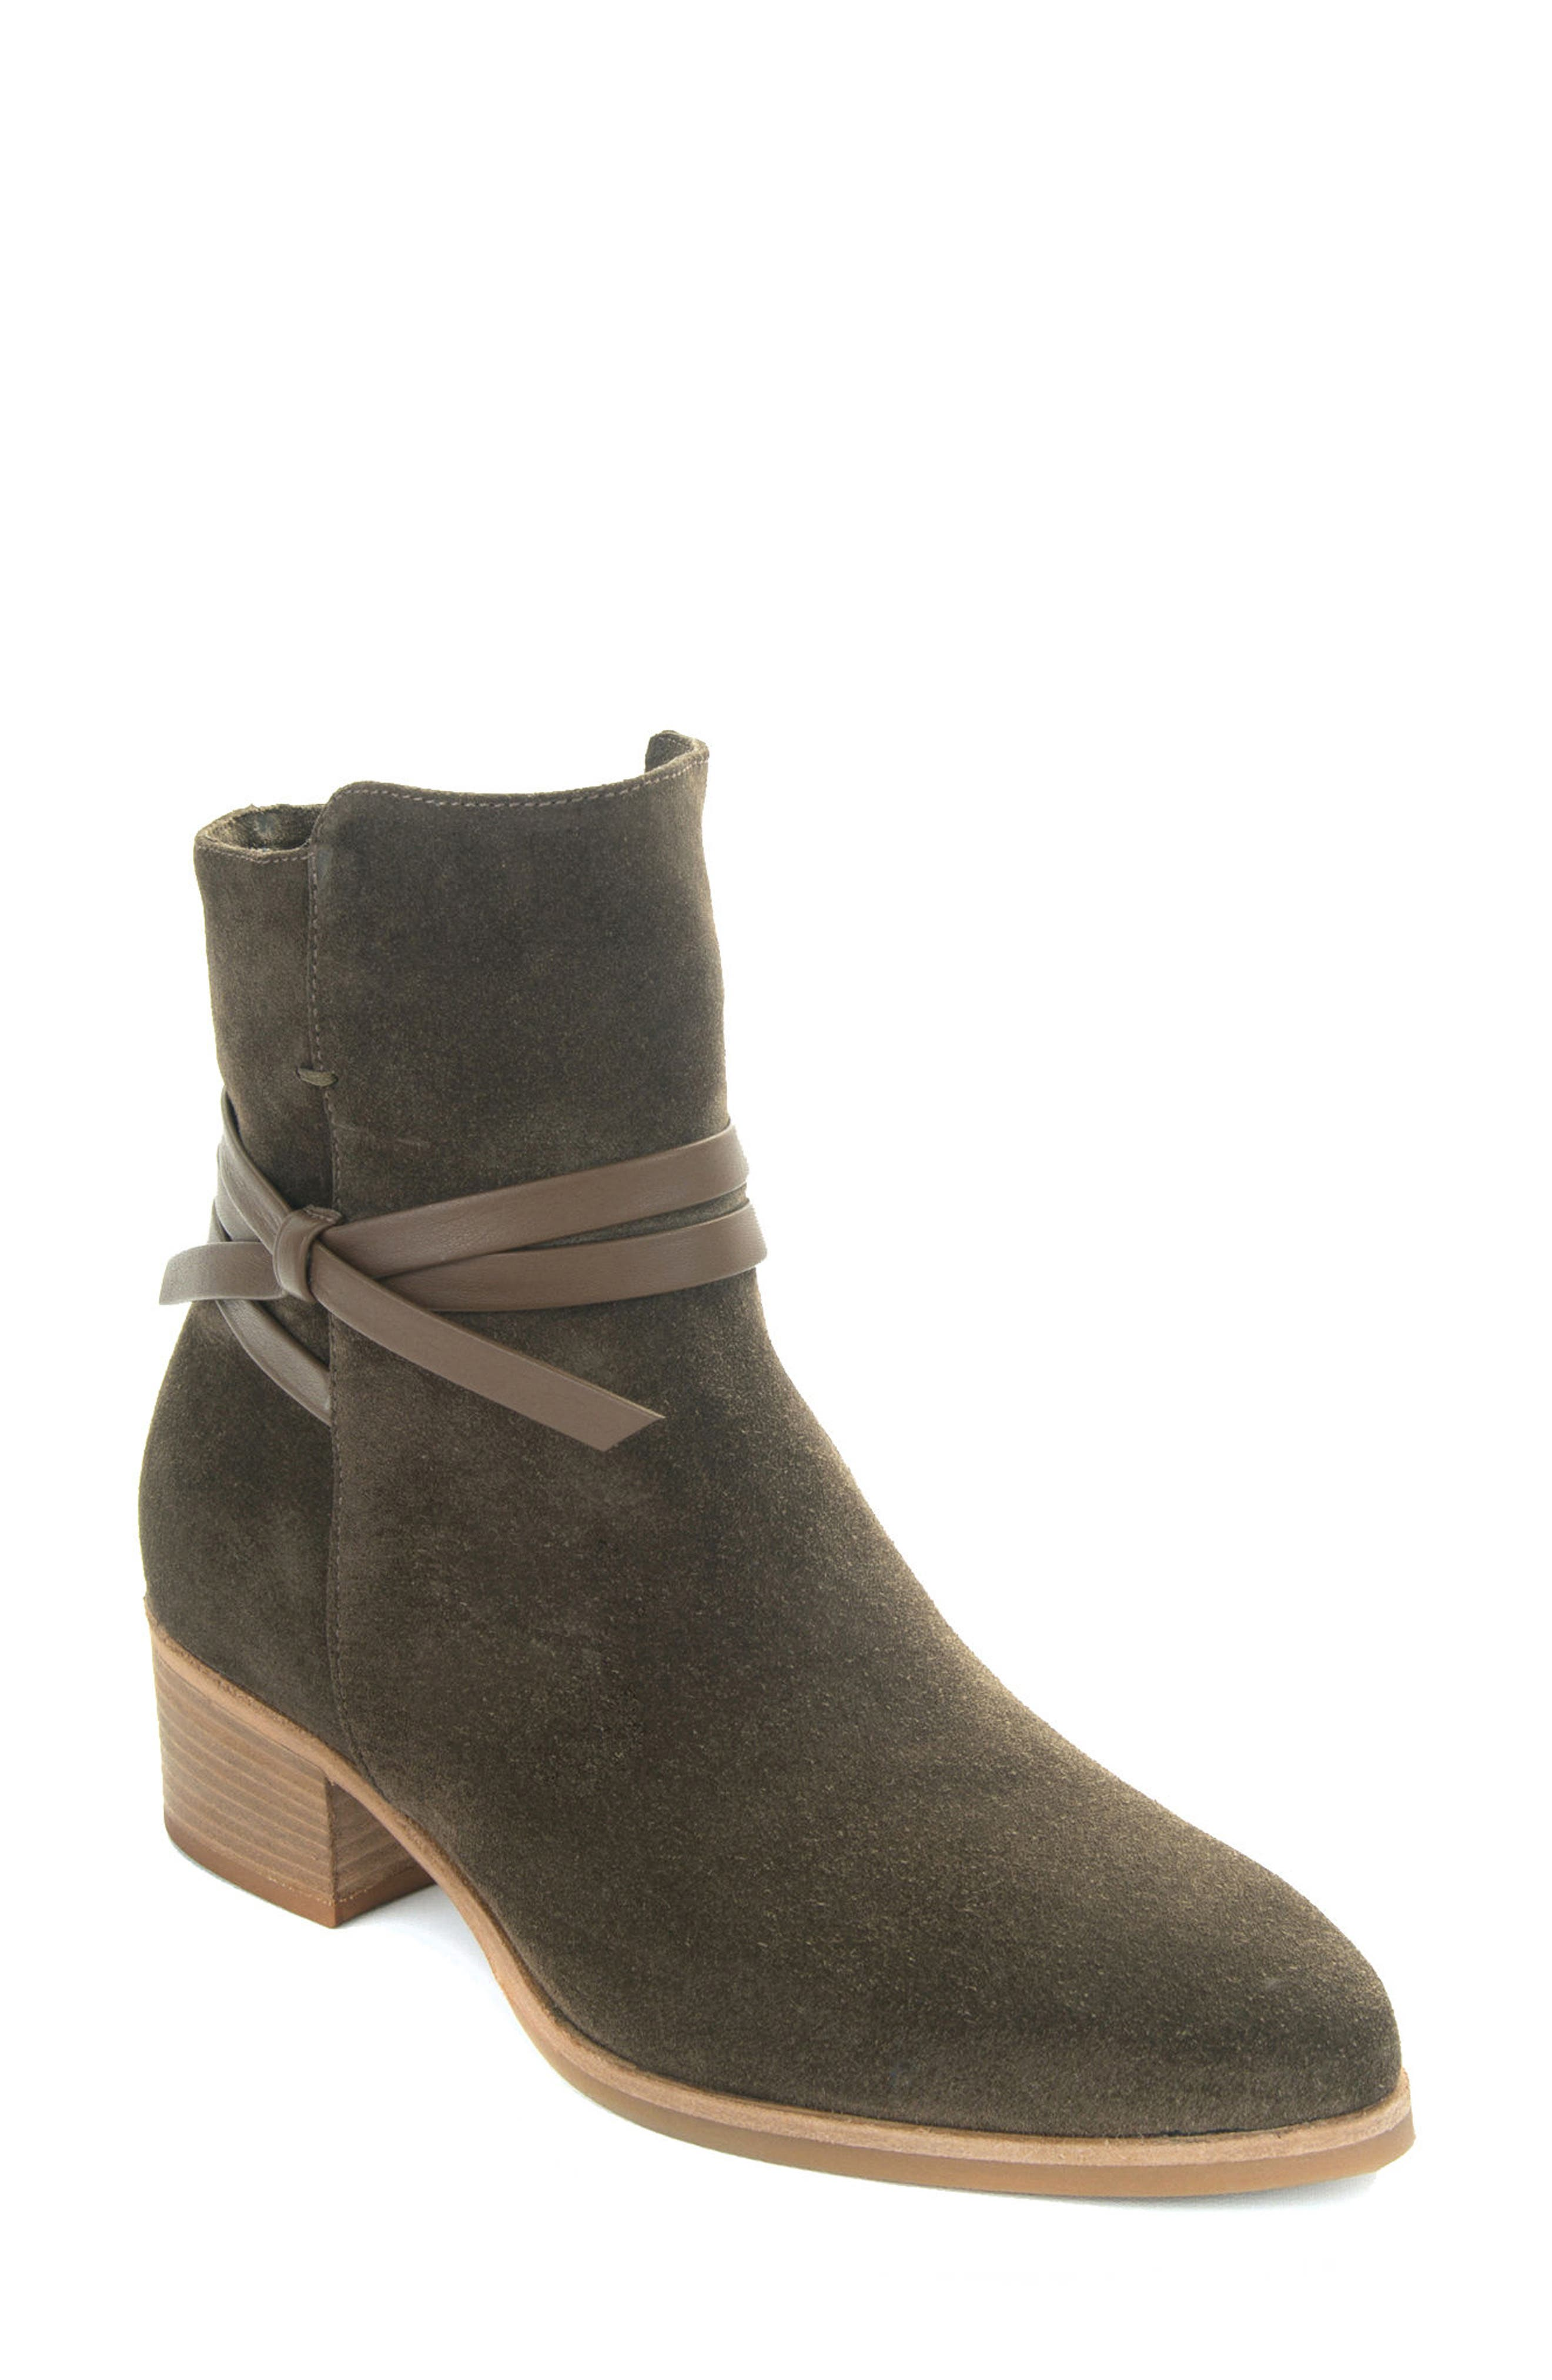 Donata Water-Resistant Bootie,                         Main,                         color, Militare/ Green